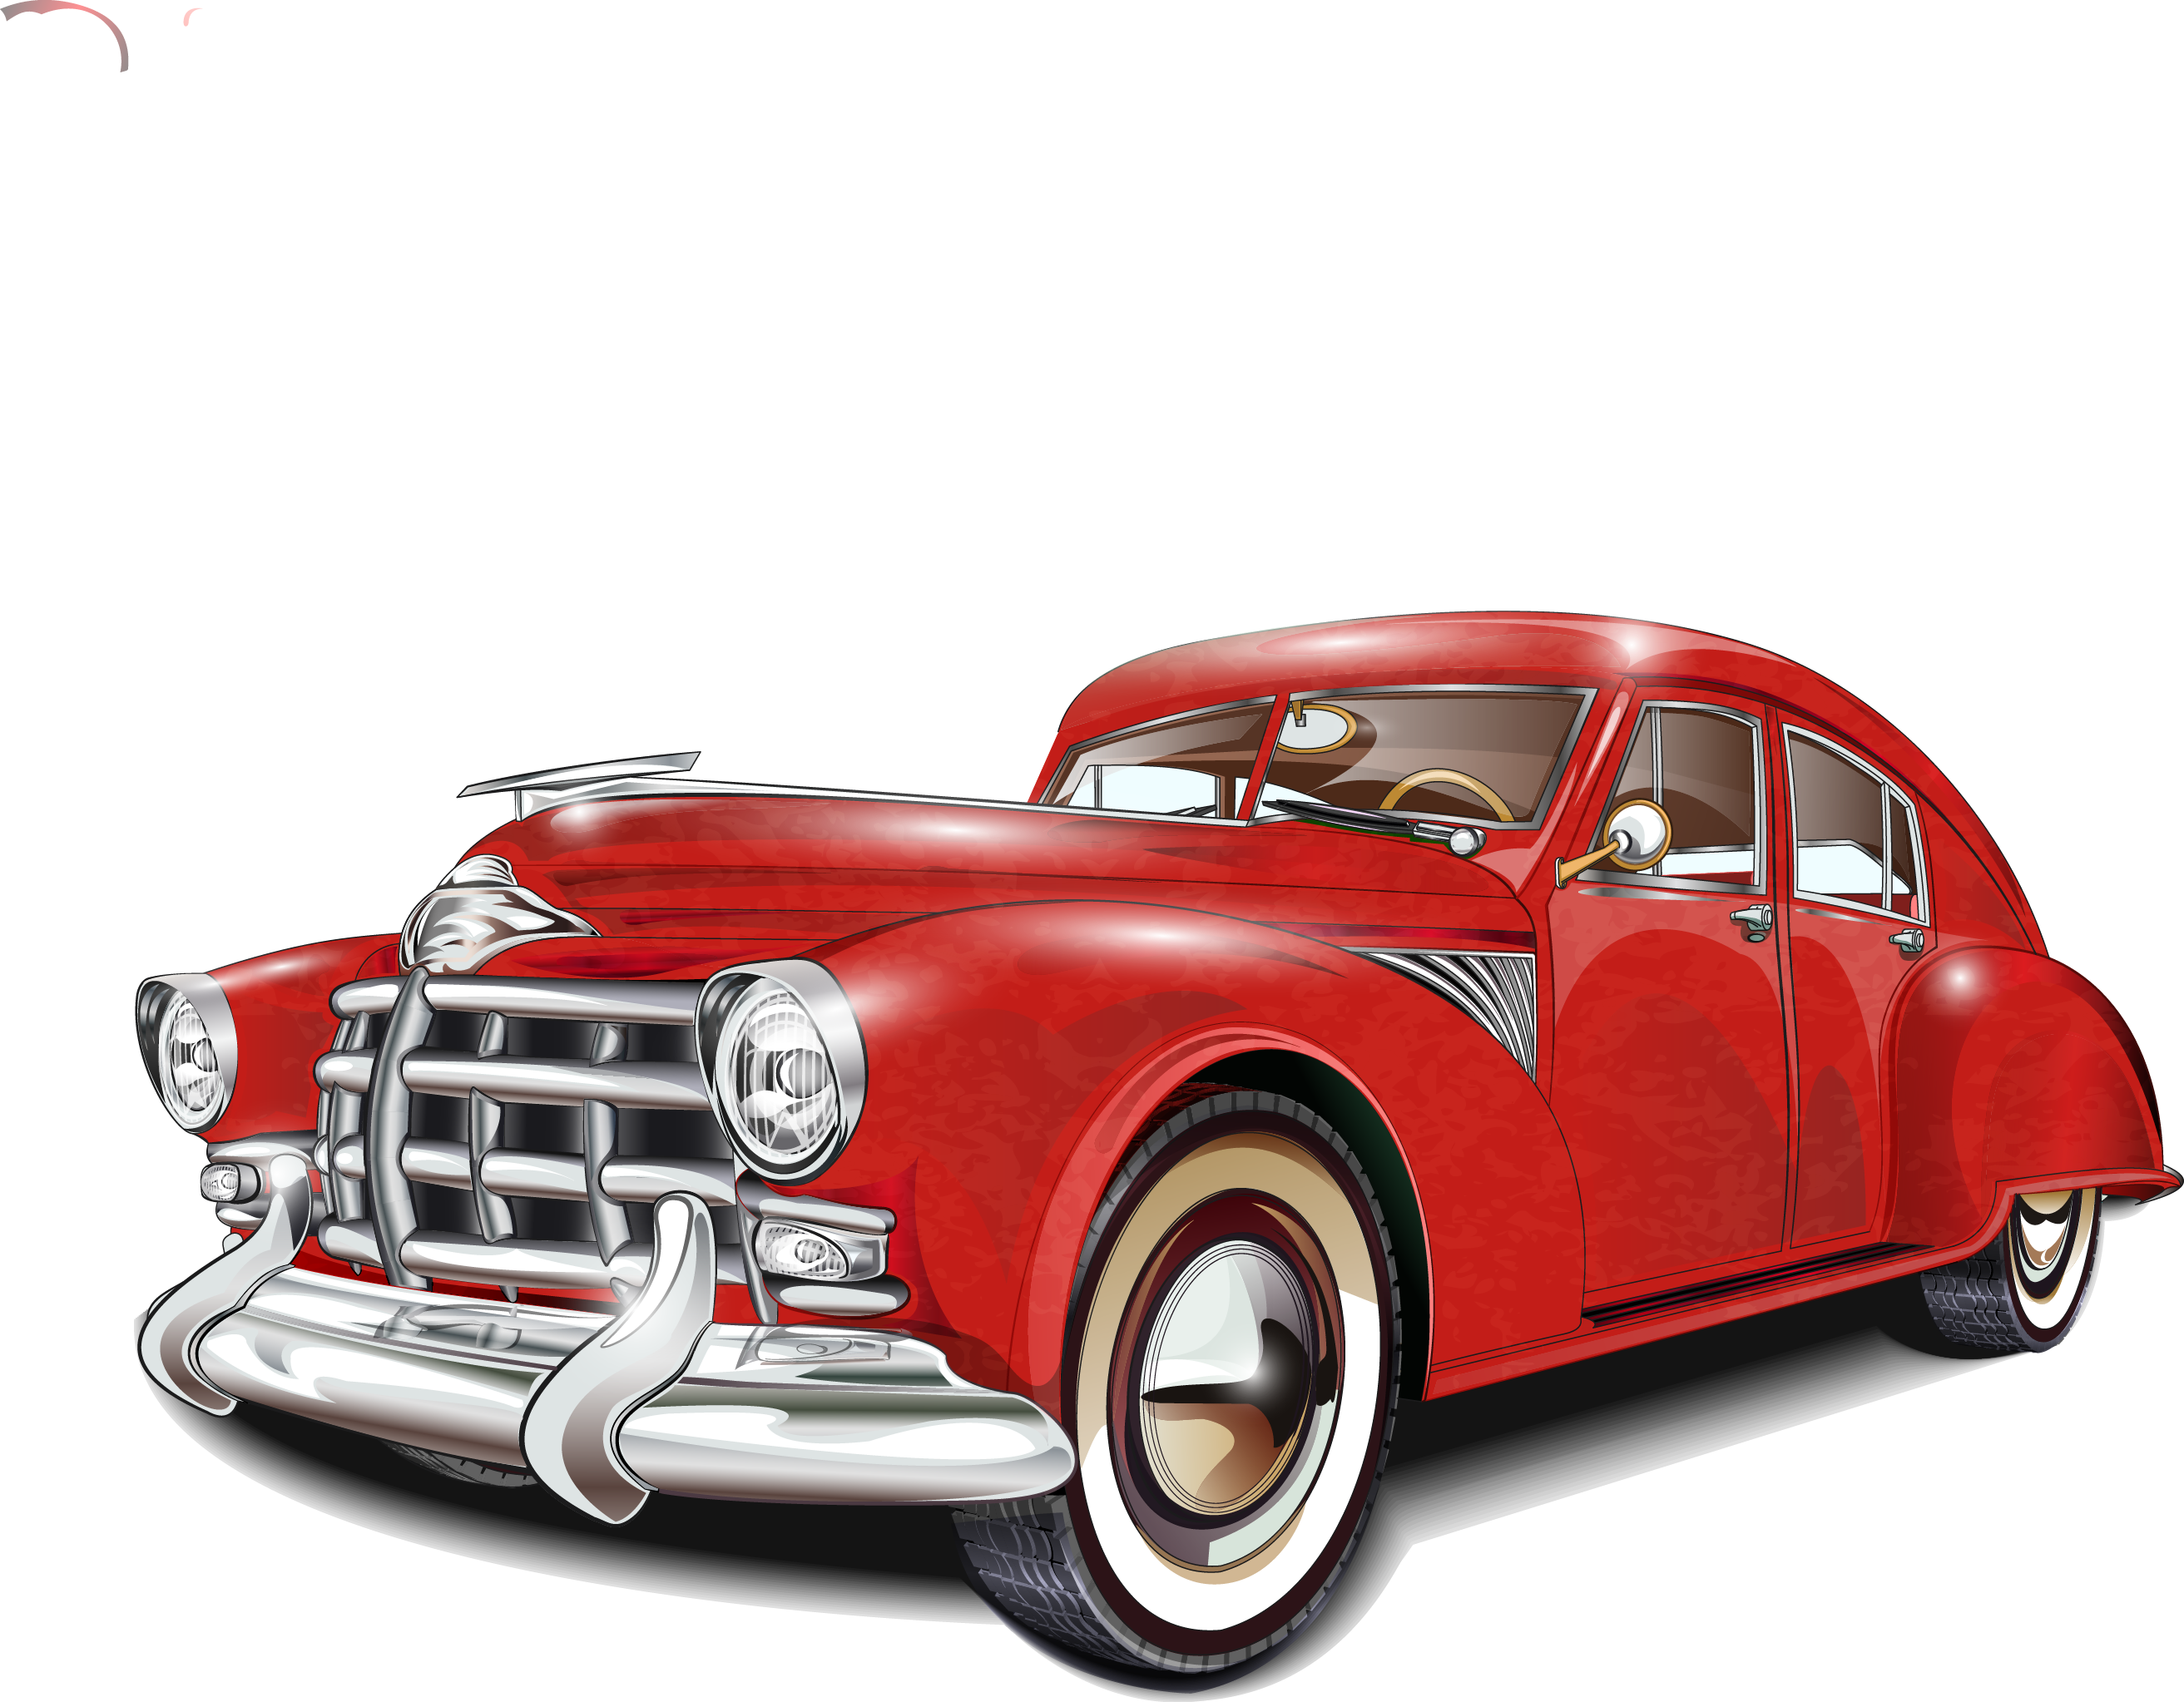 Classic car vector clipart images gallery for free download.